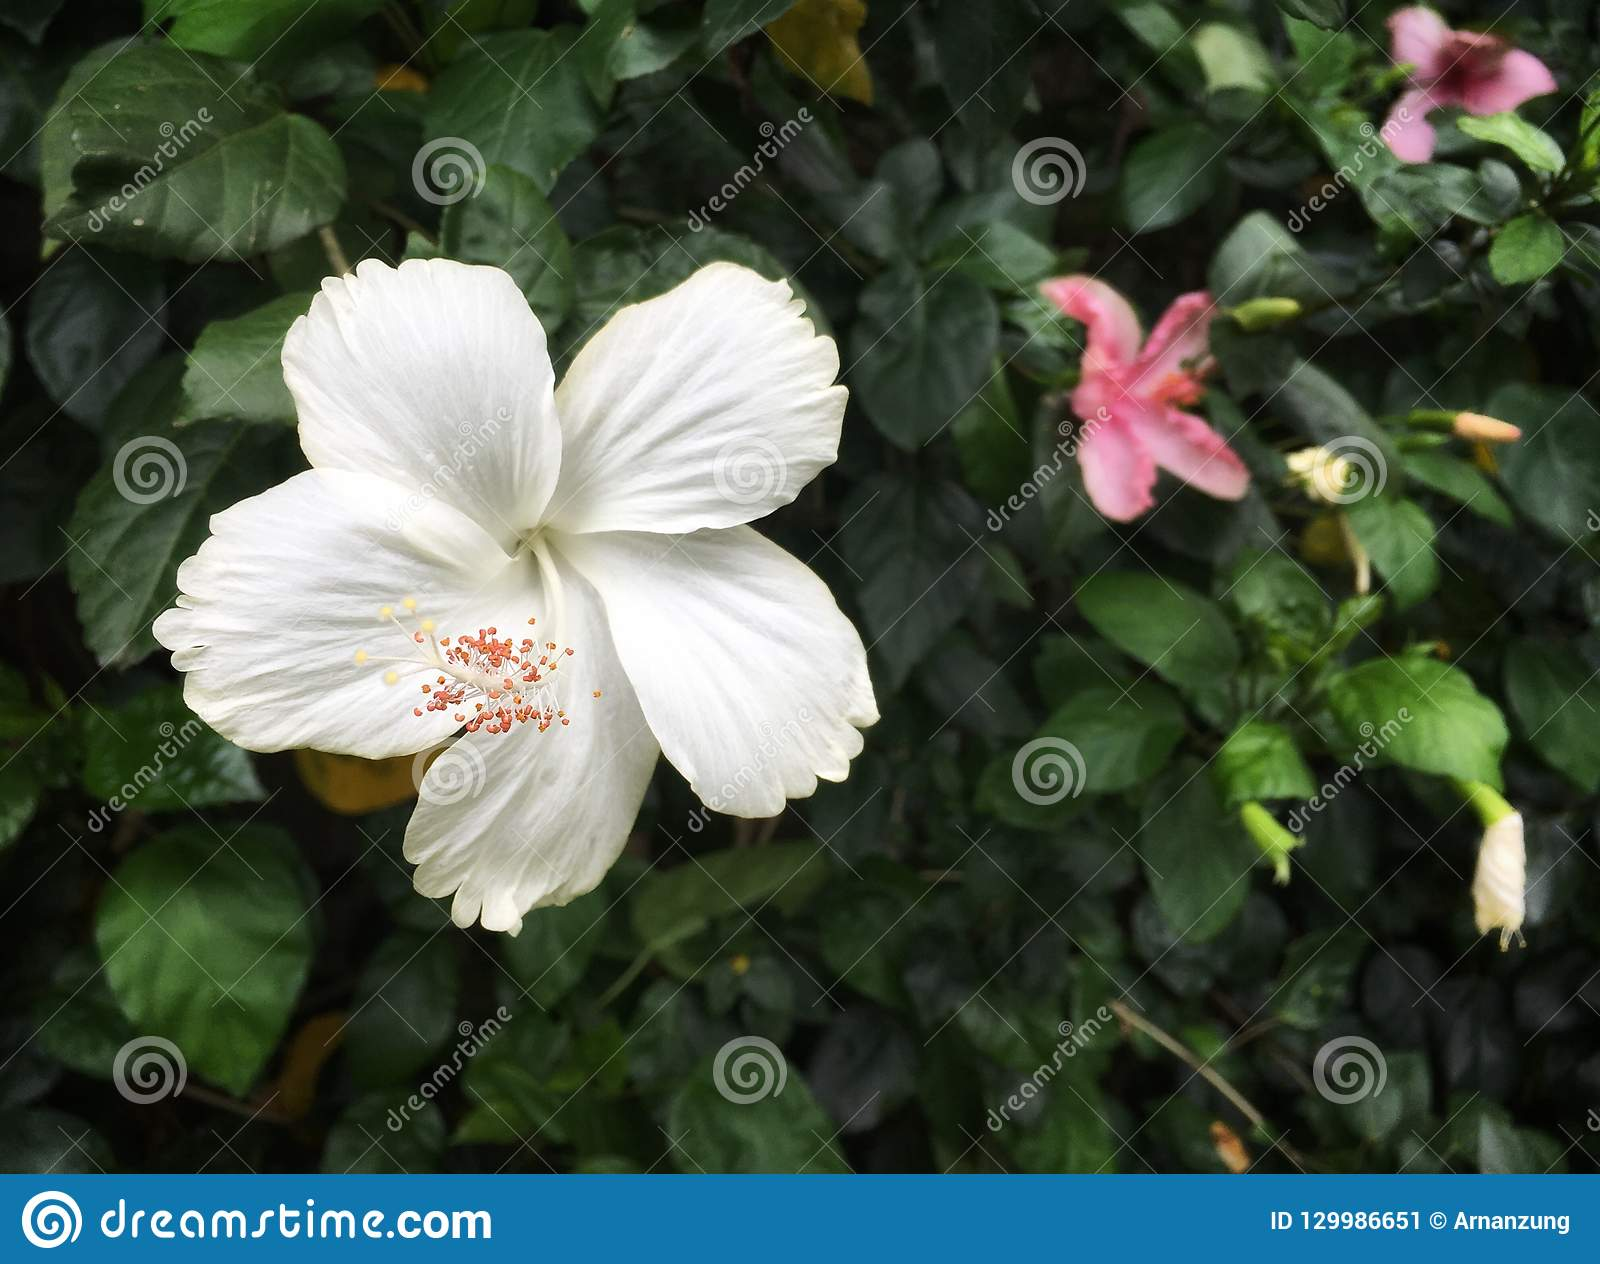 White Hibiscus Flower With Pink Pollen Stock Image Image Of Green